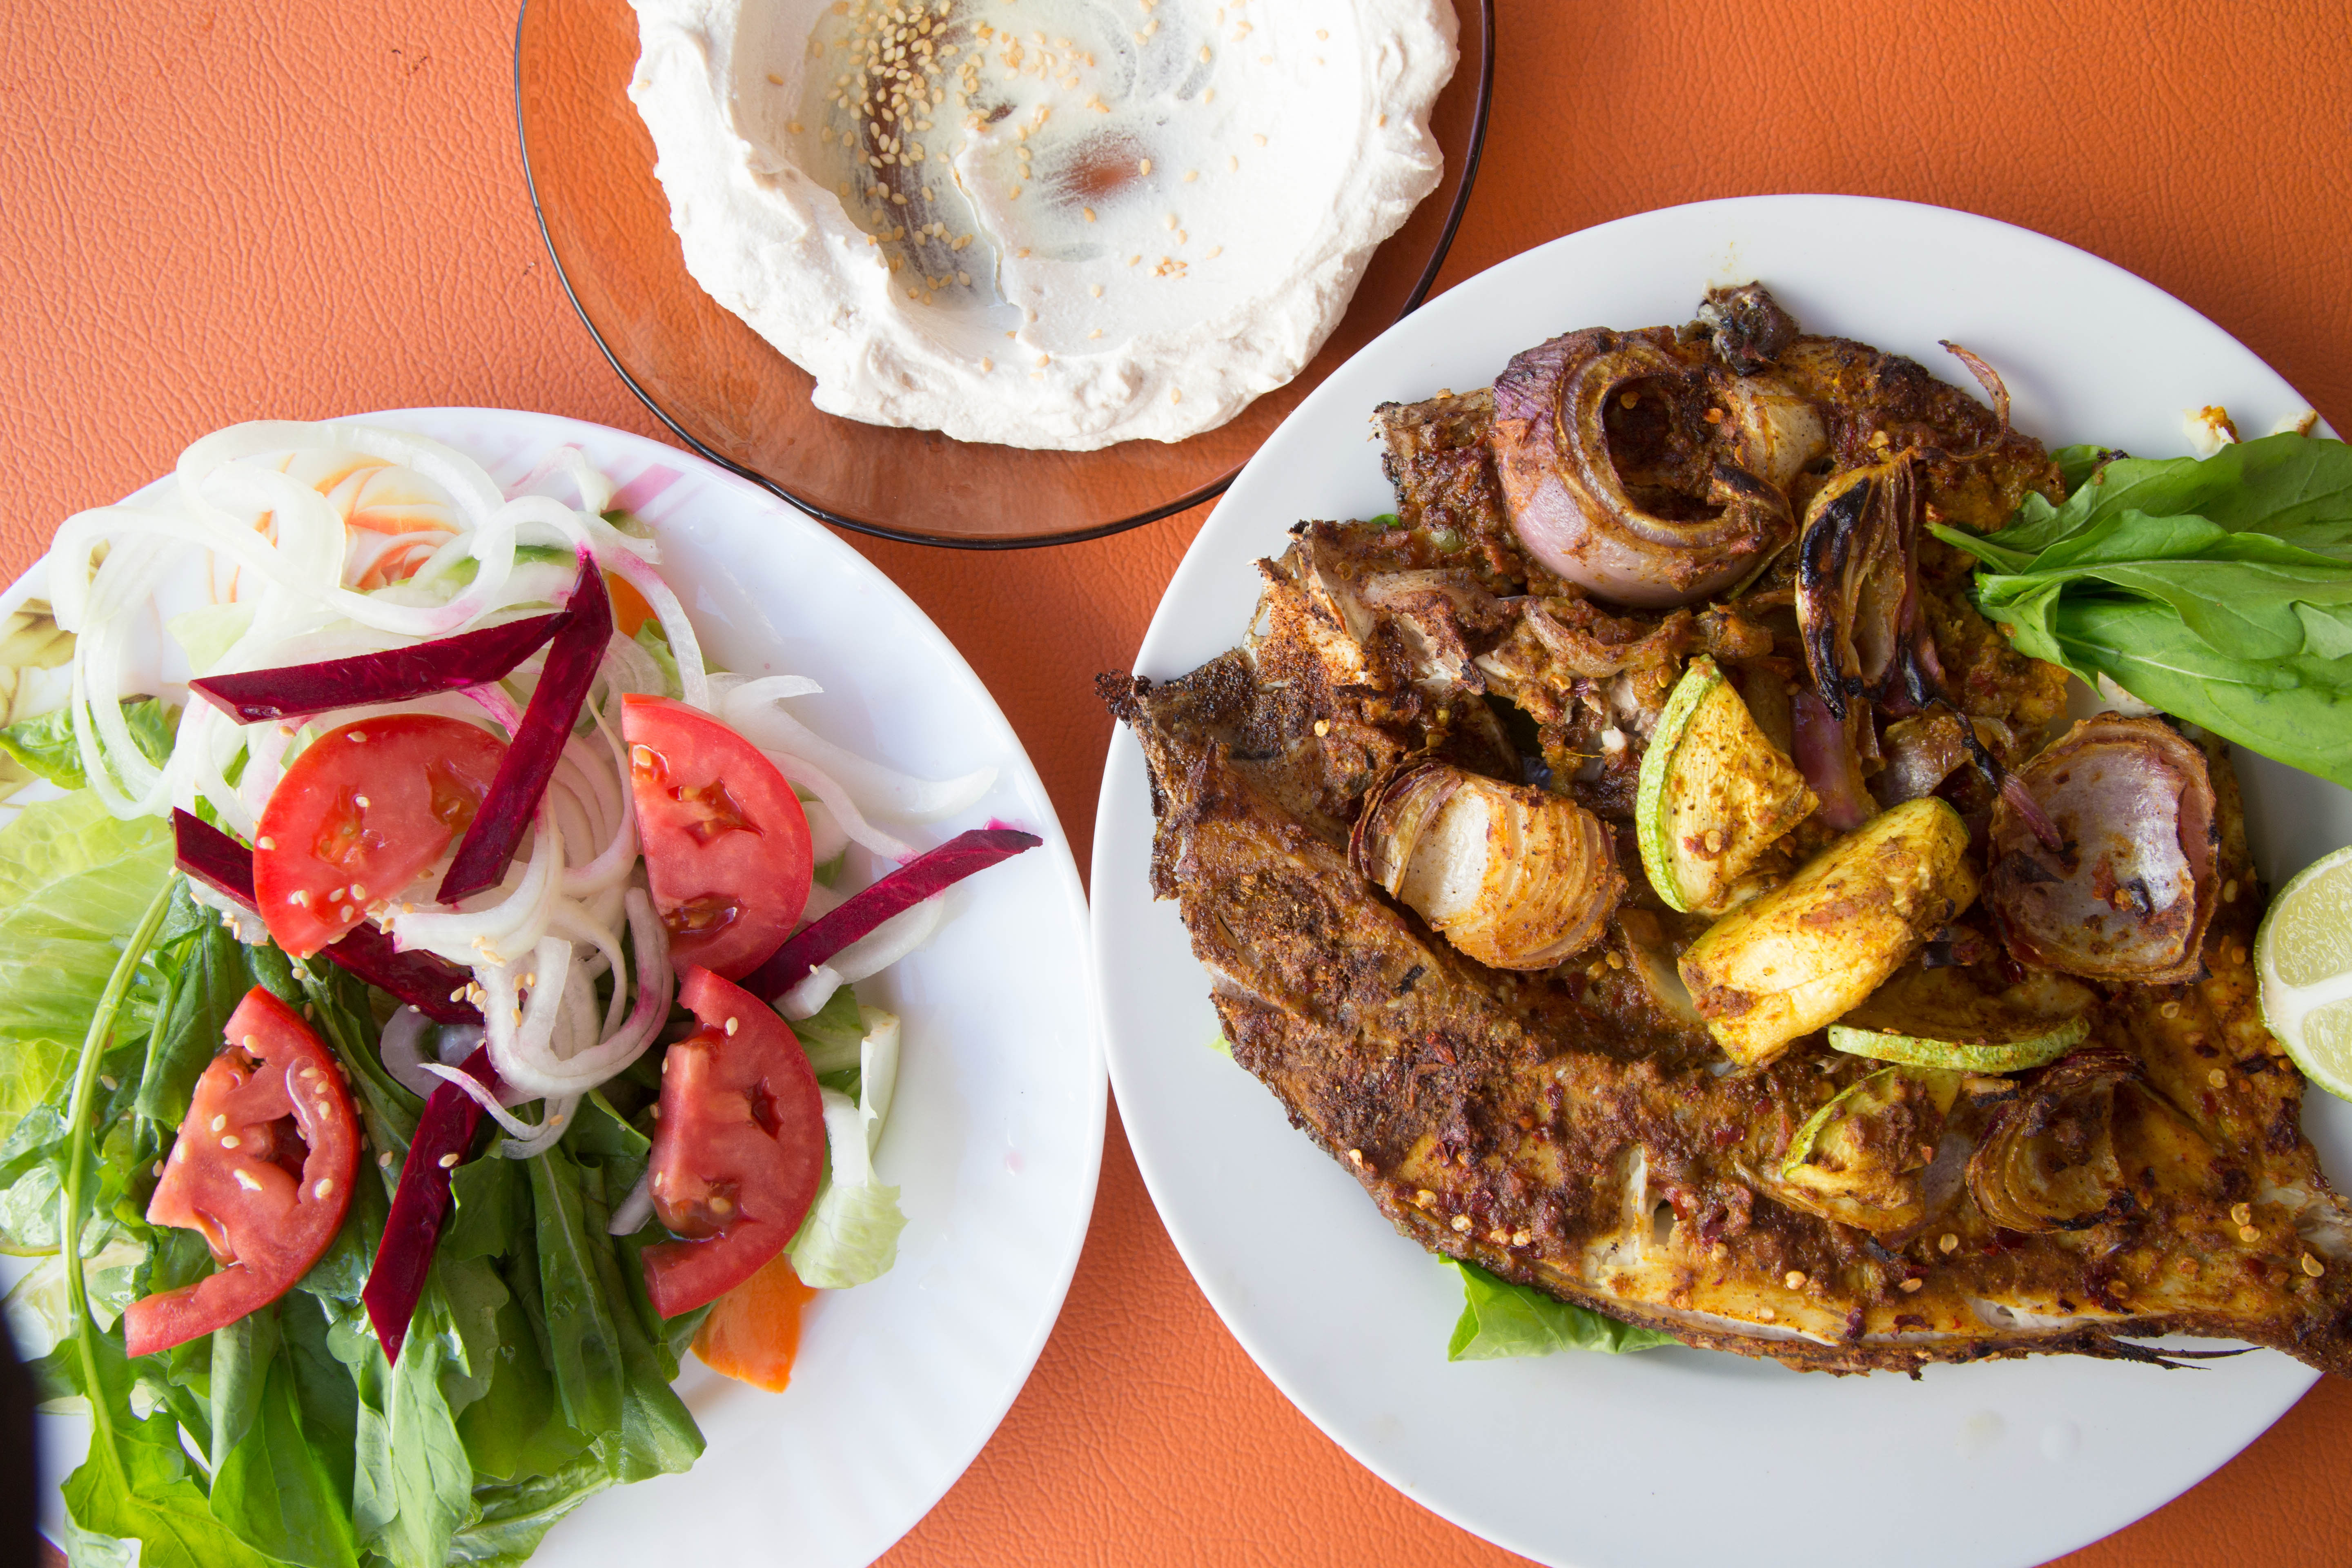 Oman Dining: Fishers Grilled in Corniche is a truly delicious experience